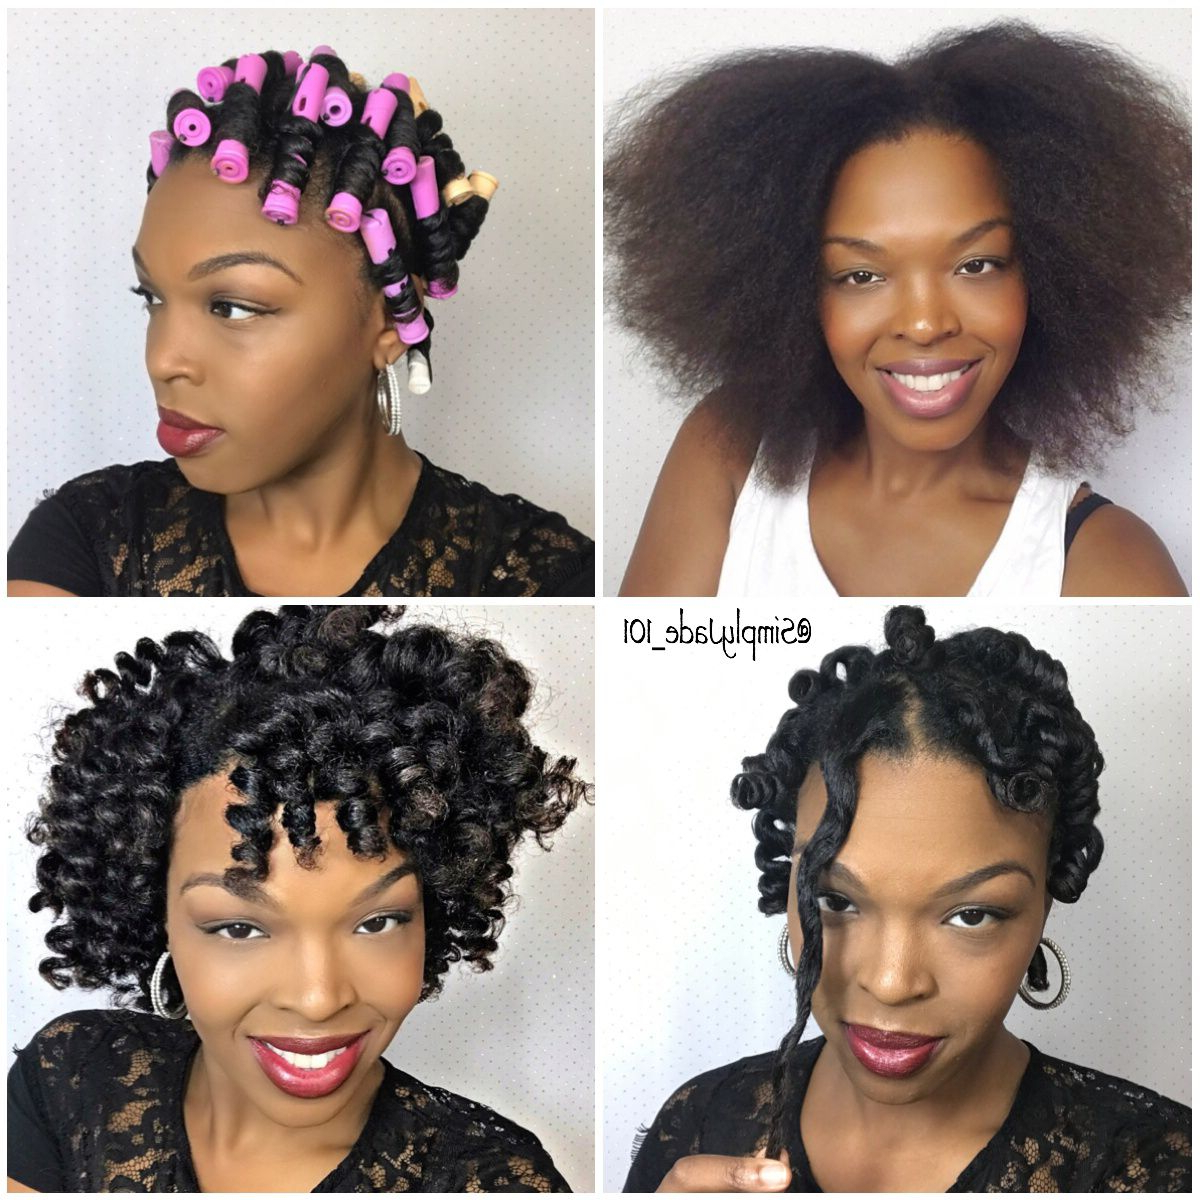 Perm Rod Set Pictorial For Short/medium Length Hair! Full Tutorial Within Latest Natural Medium Haircuts (View 17 of 20)